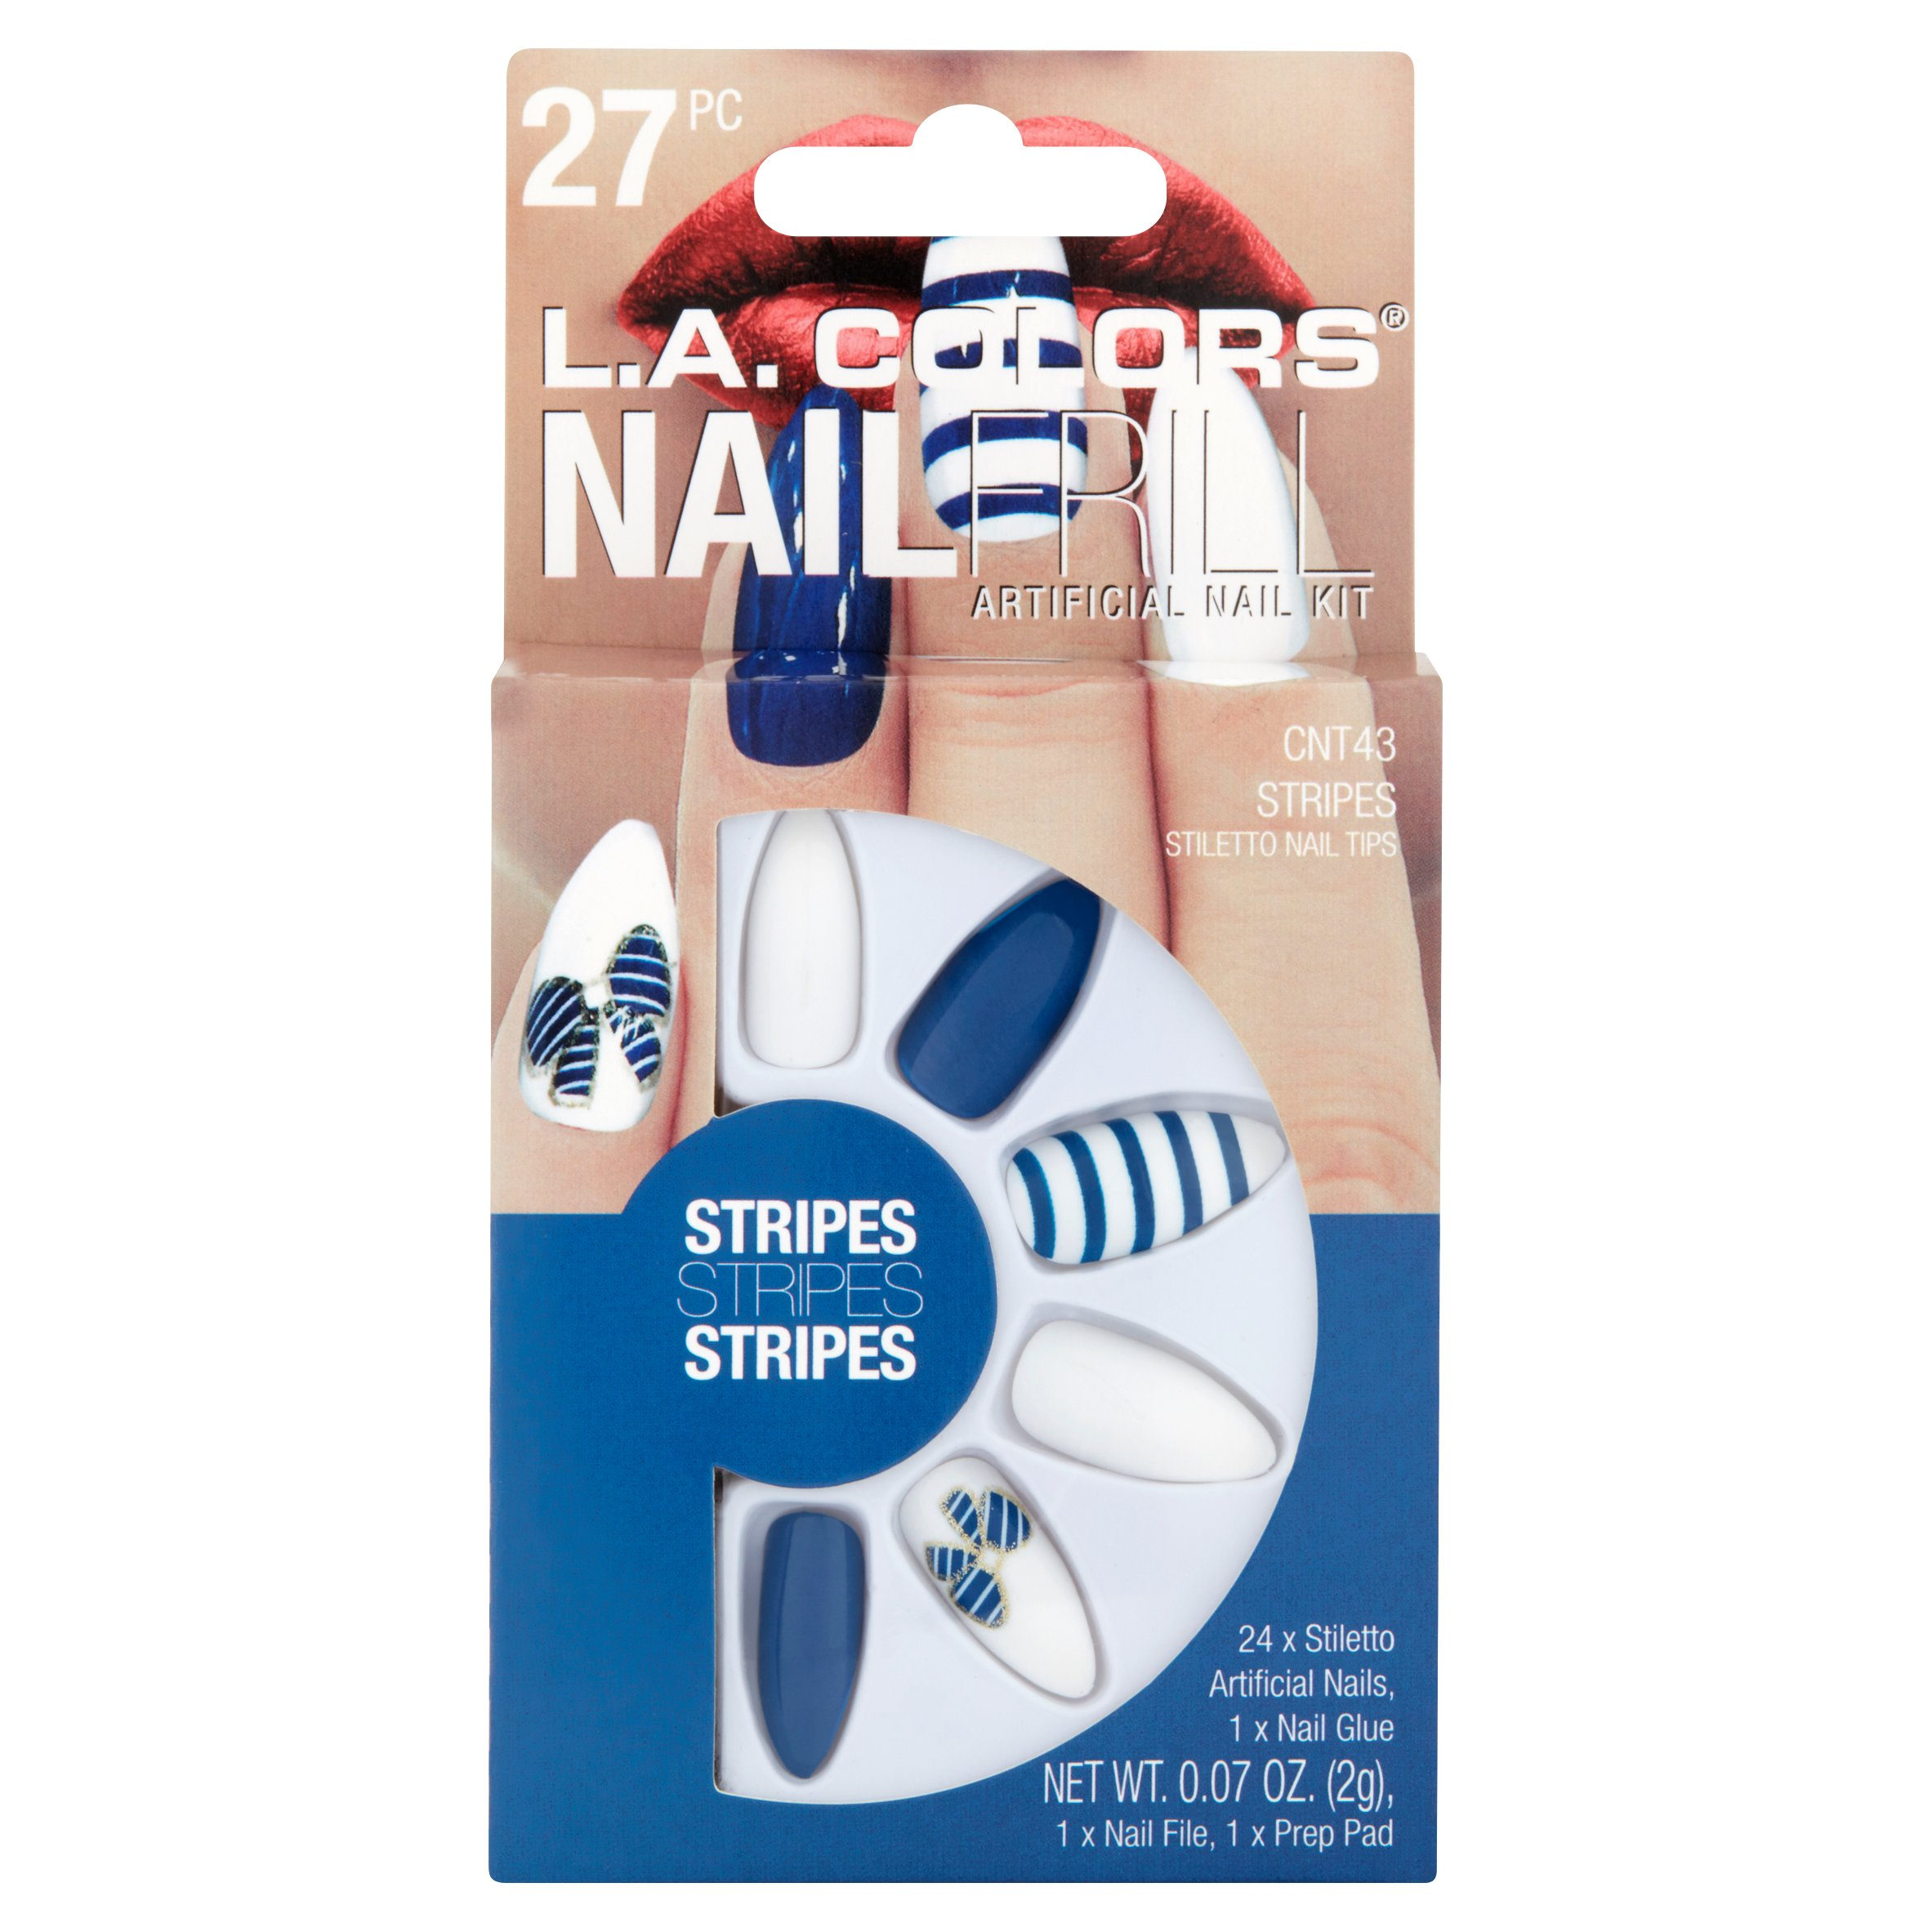 L.A. Colors Nail Frill Stripes Artificial Nail Kit, 27 pc